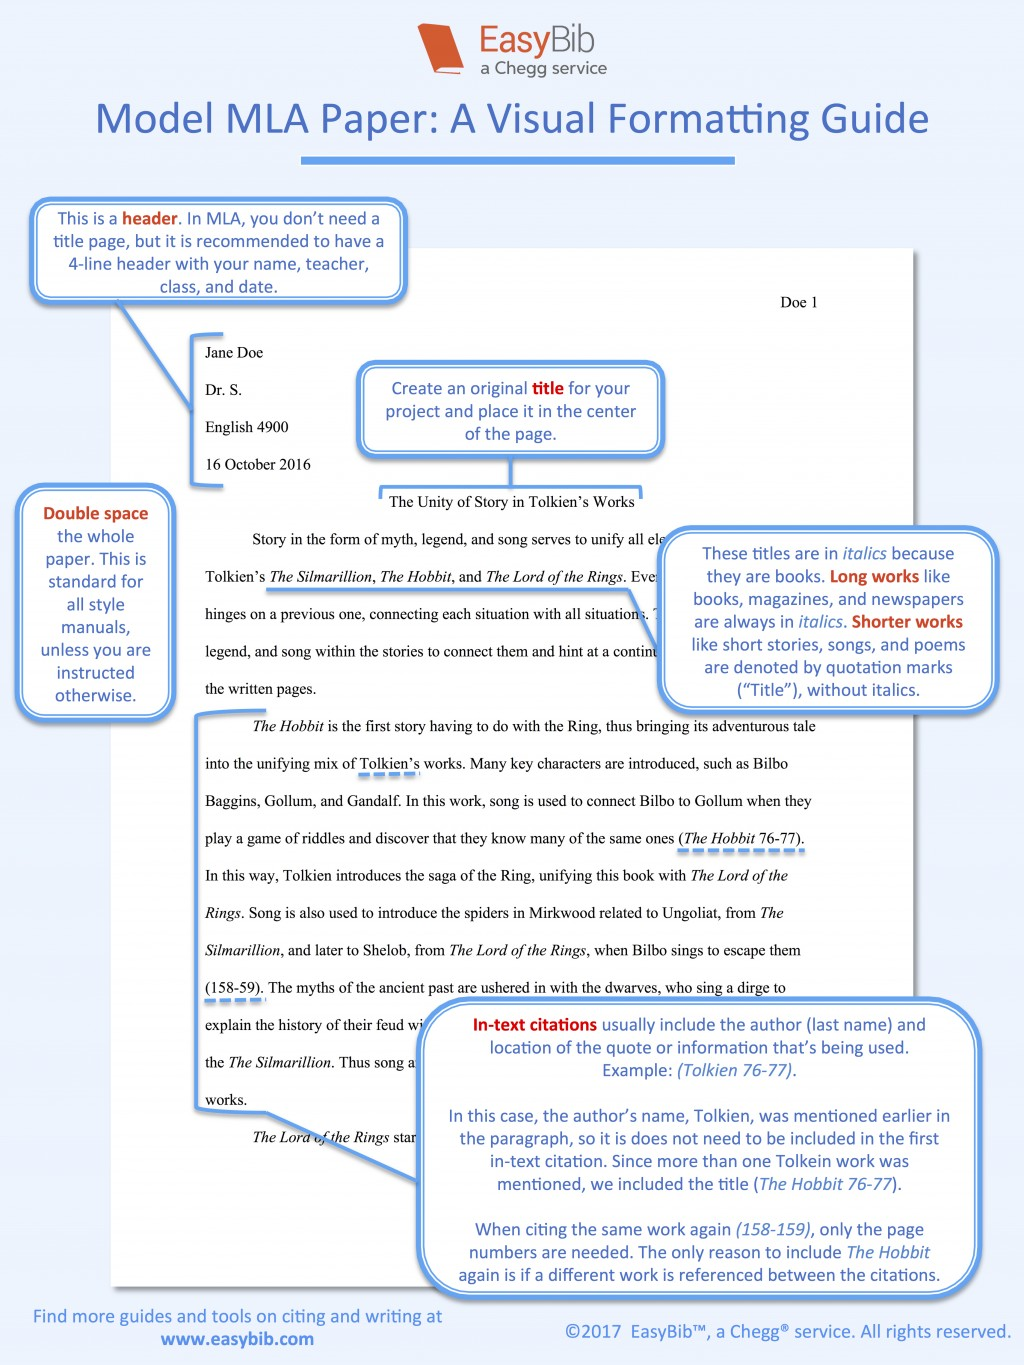 023 How To Cite Research Paper Model Mla Outstanding Format A In 8 Apa Style Large